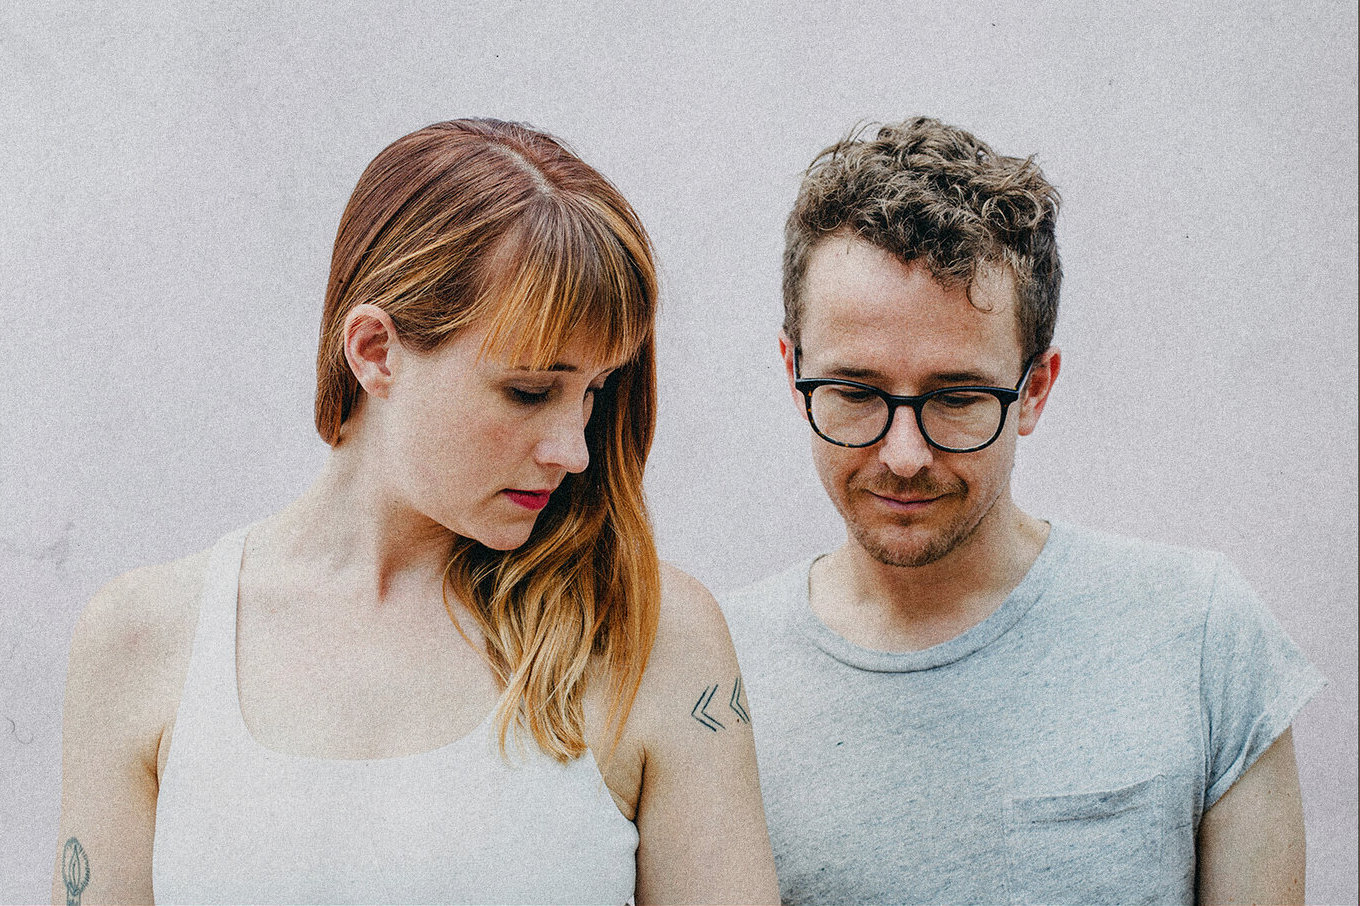 Andy Stack Talks Expanded Wye Oak Live Band, Joyero Side-Project, Everclear Covers, and More